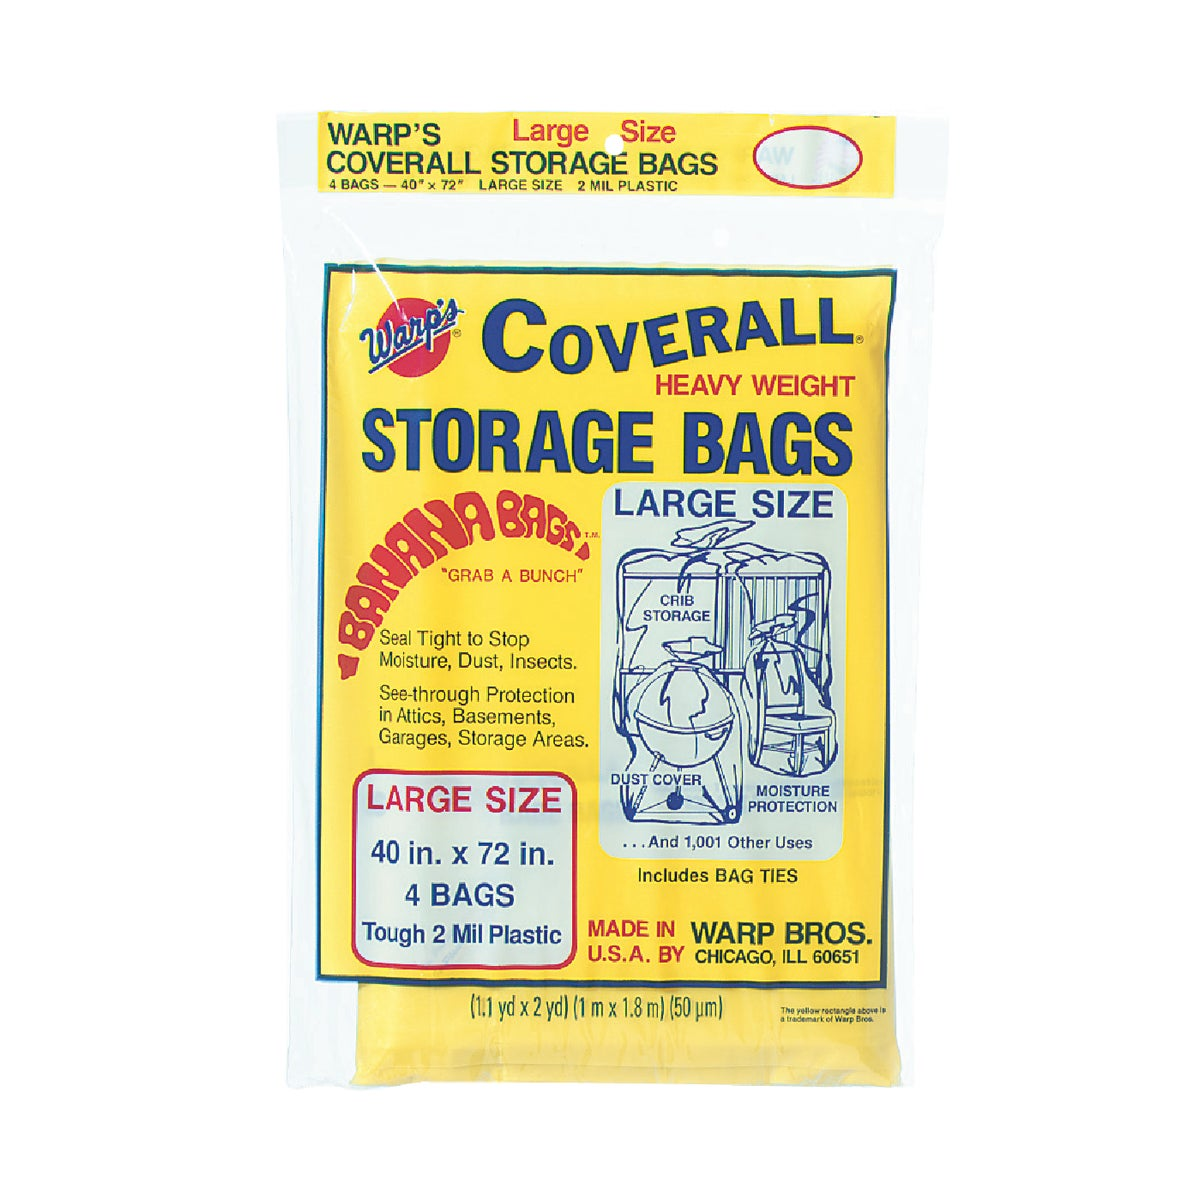 Warp Bros. 40X72 STORAGE BAG CB40